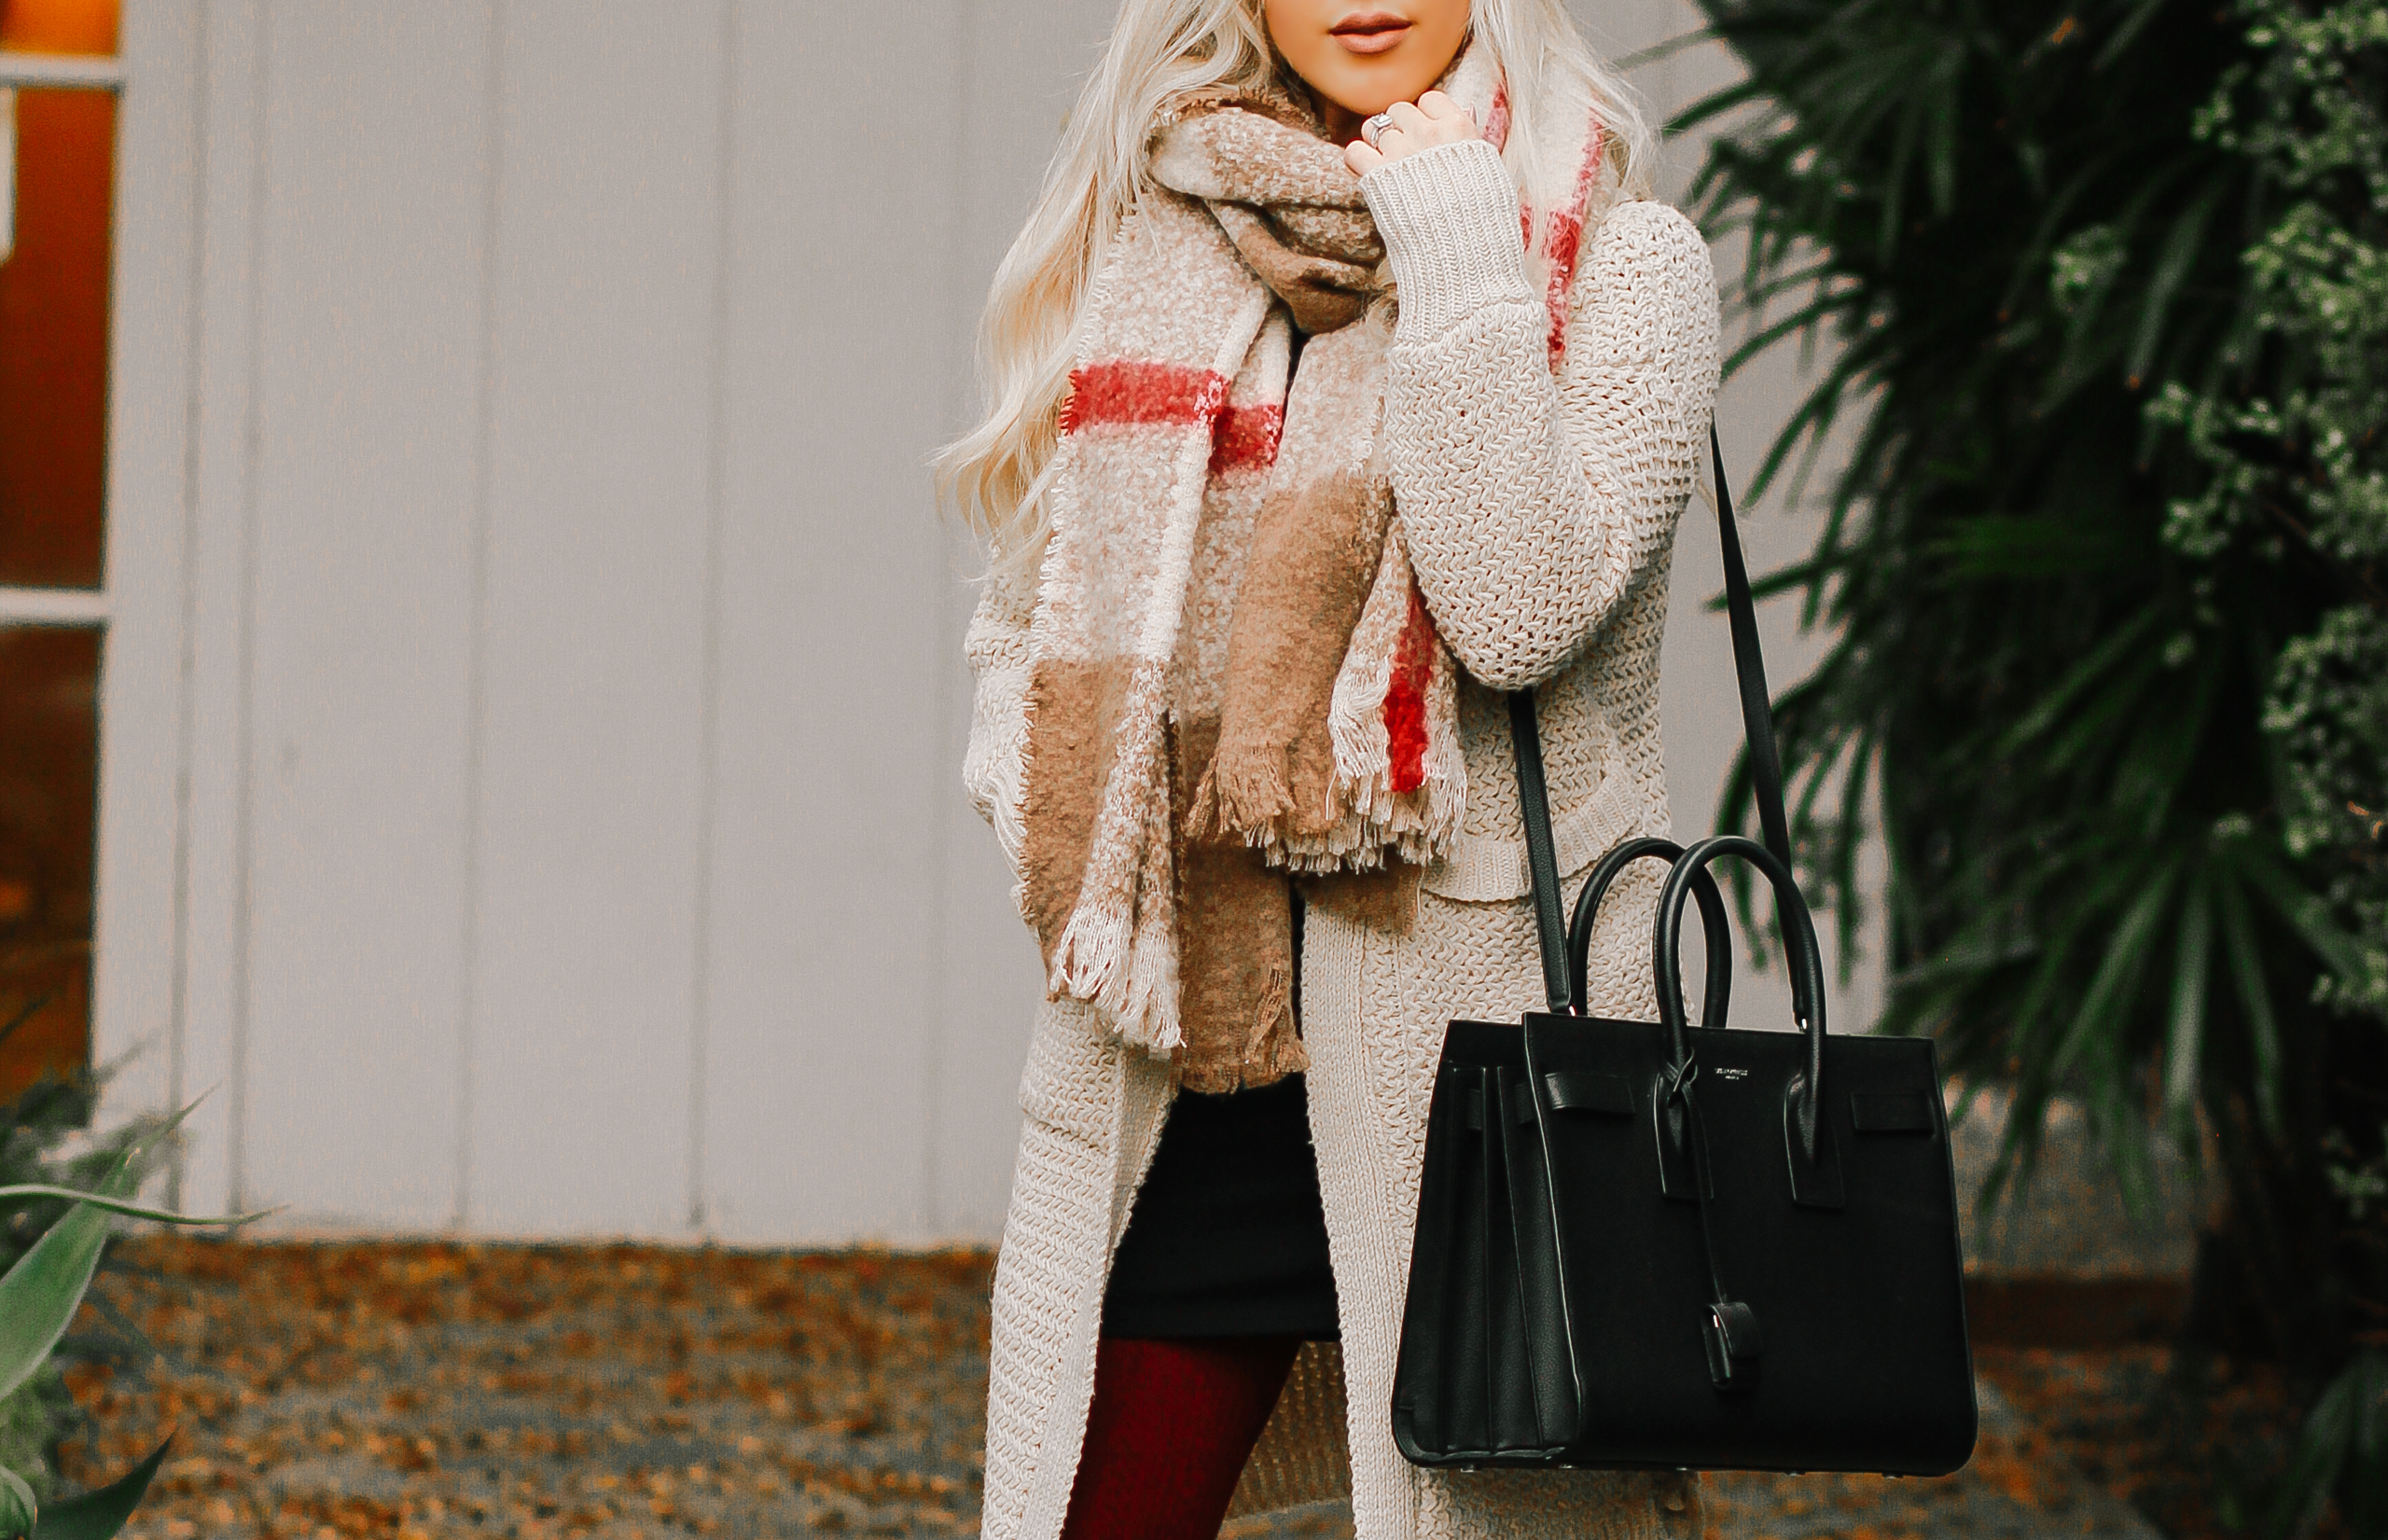 Plaid Scarf, Black YSL Bag, Winter Fashion | Blondie in the City